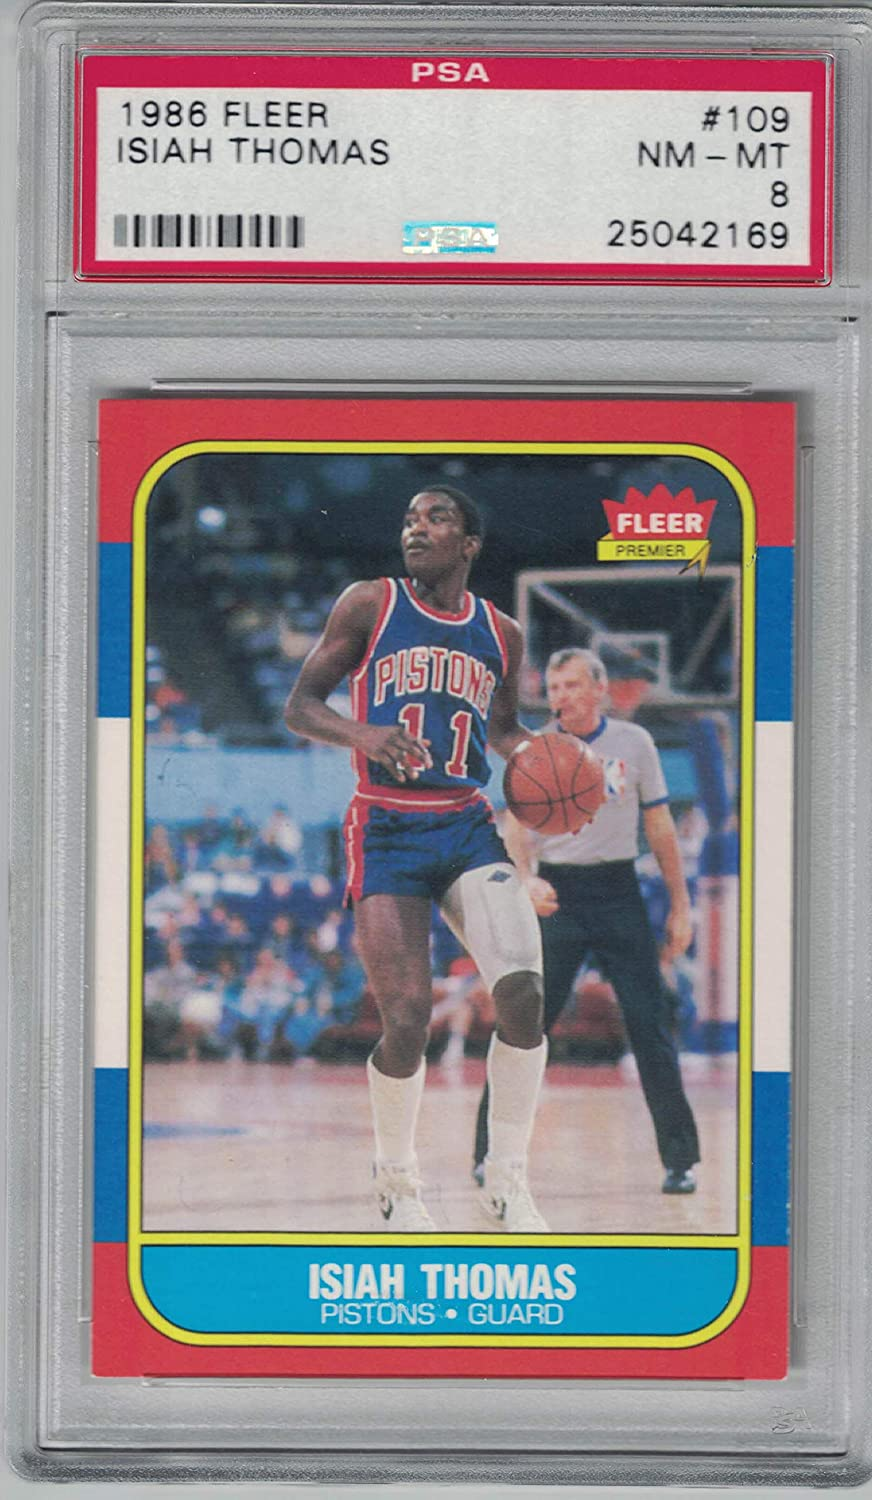 PSA NM-MT 8 1986 Fleer Isiah Thomas Rookie Card